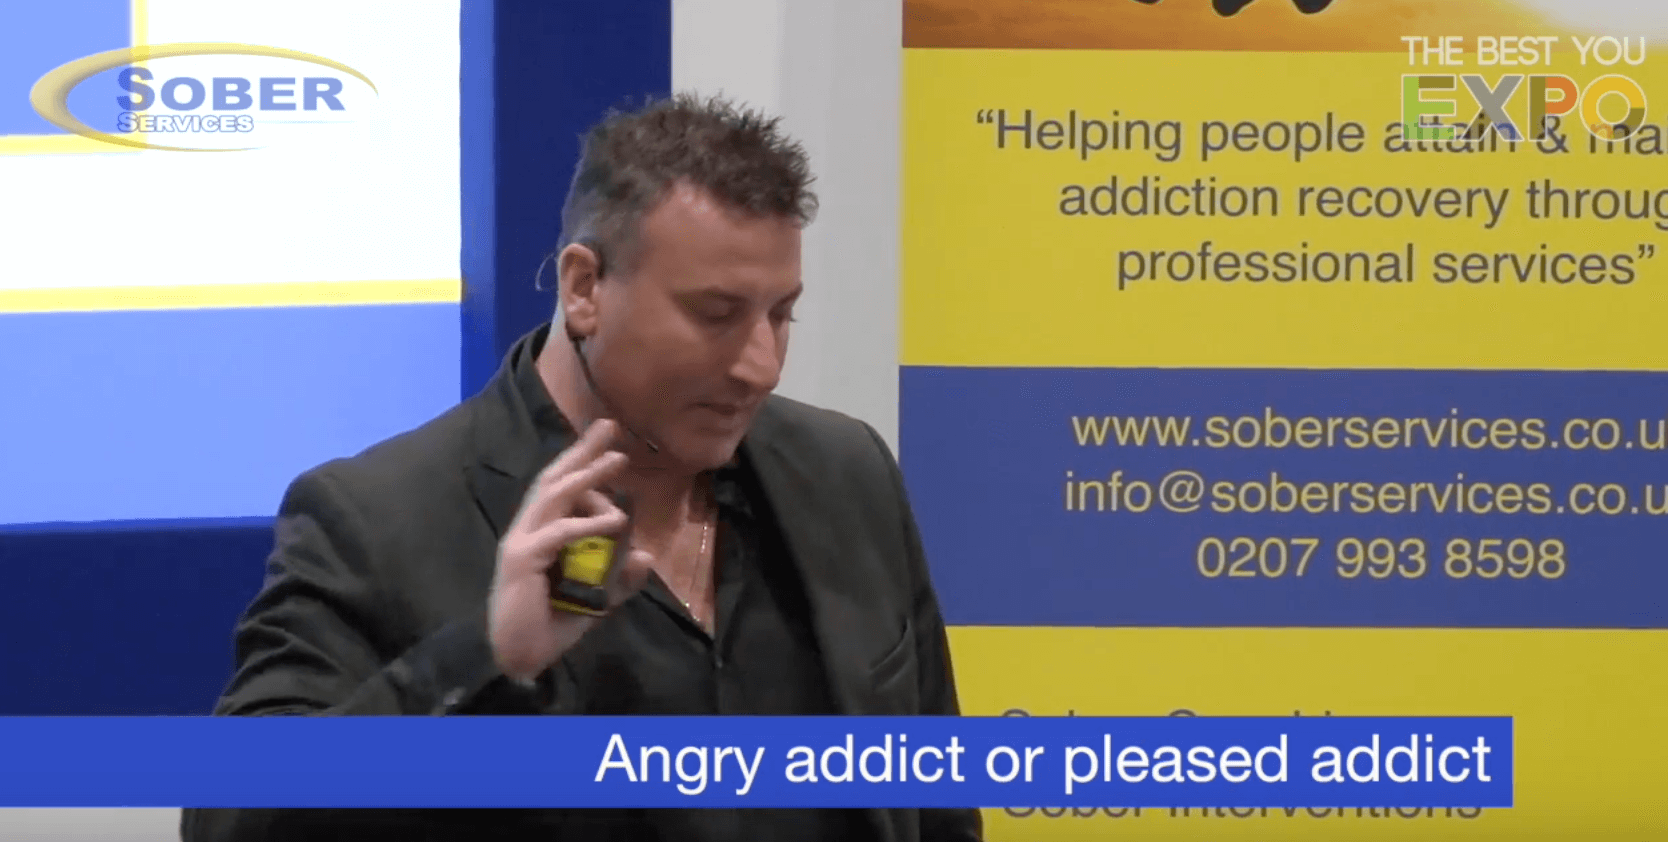 Angry addict or please addict